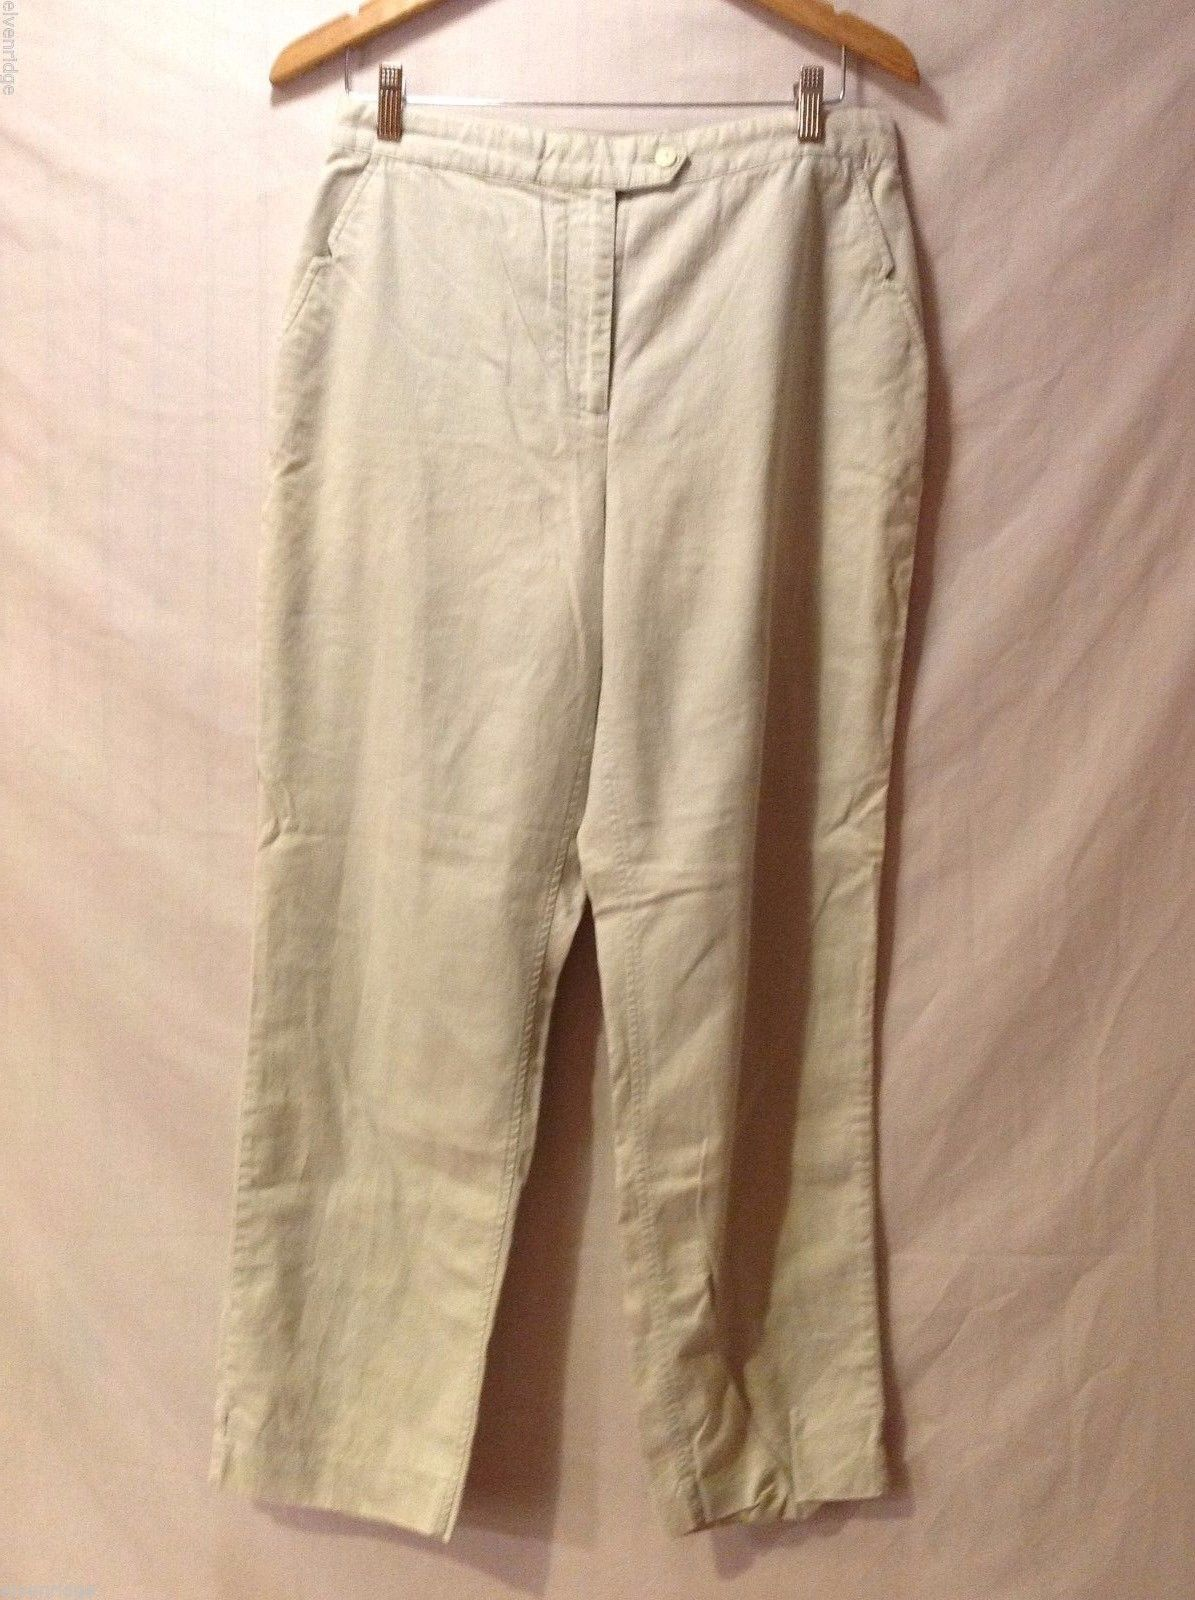 Womens Wrinkle Free Khaki Dress Pants, Size 10